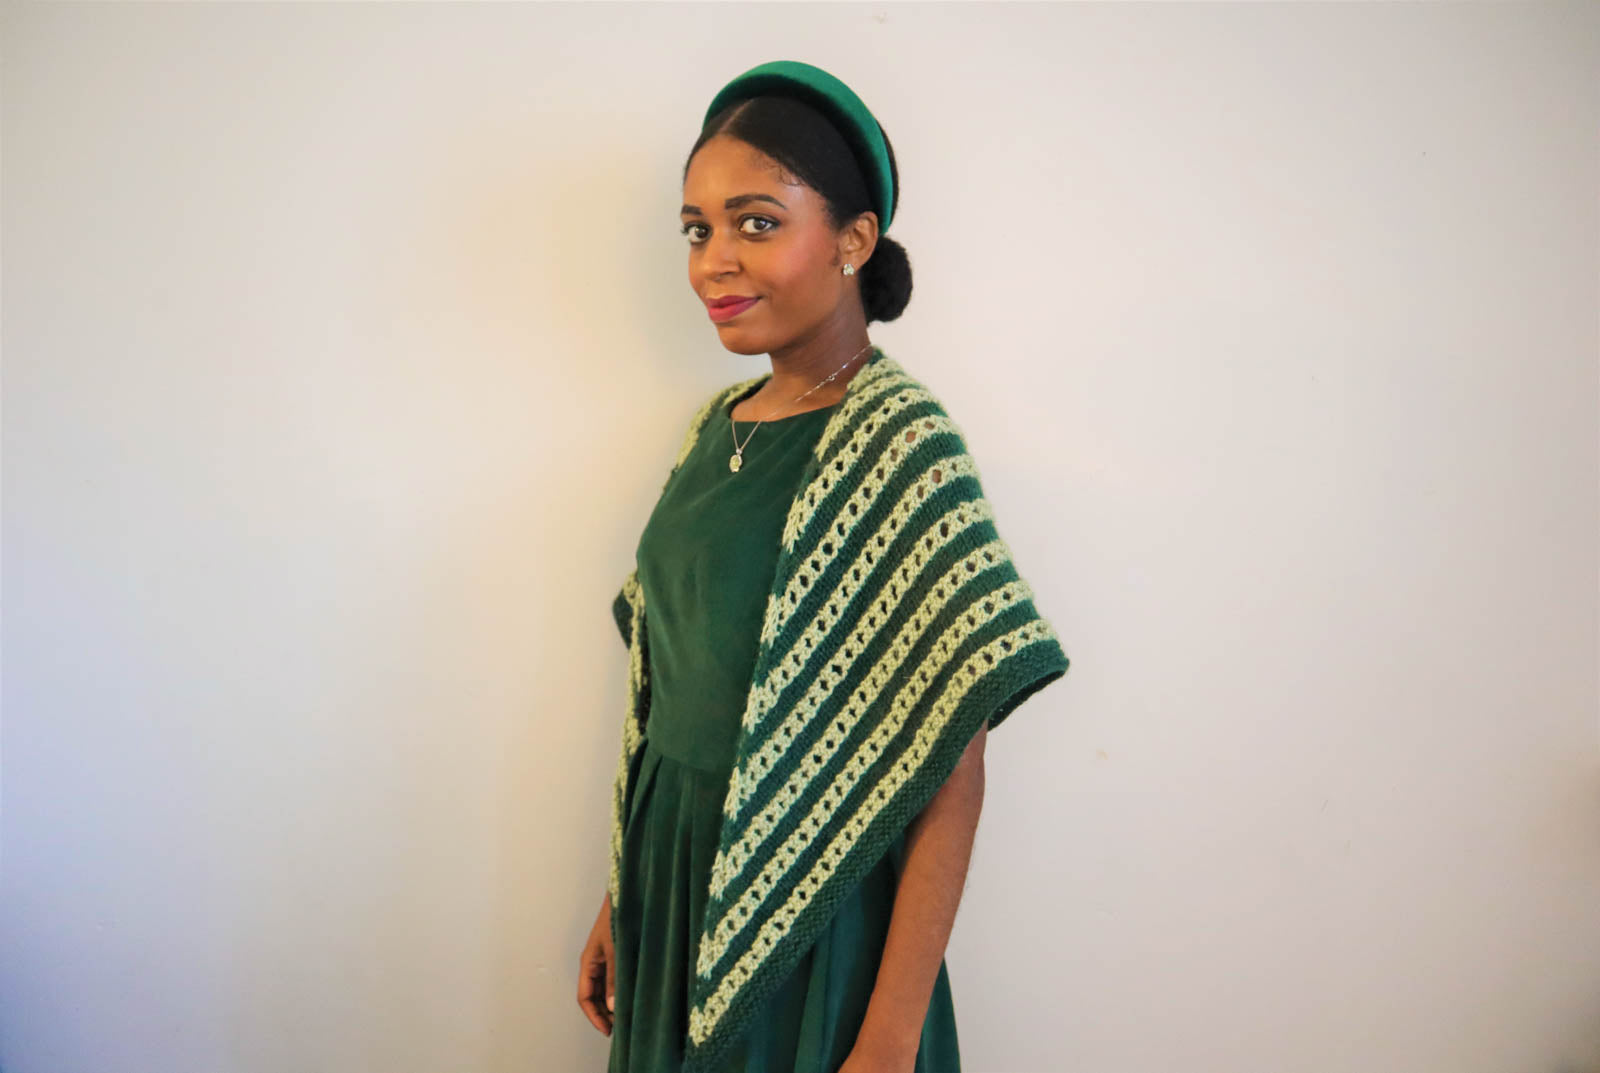 Women wearing knitted light green and spruce shawl over her shoulders. Women is wearing a spruce green dress, turned sideways with her left shoulder forward, looking at the camera smiling.